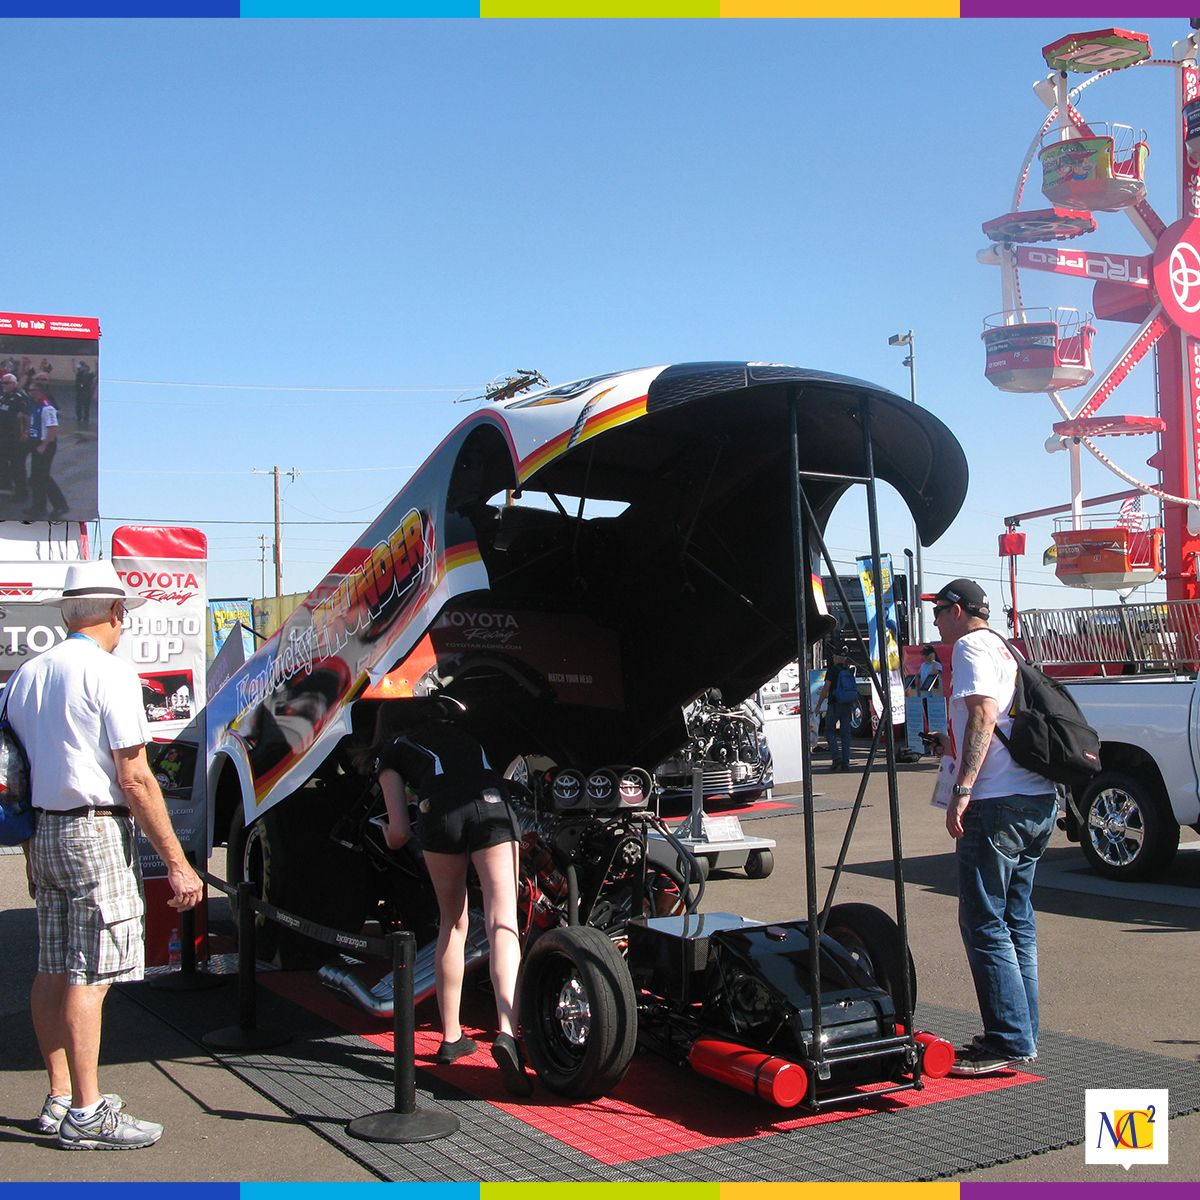 Our PitPass Daytona 500 display for Toyota allowed event attendees to fully experience the makings of a racecar by walking under the lifted exterior of the vehicle. #Toyota #Daytona #racecar #marketing #MC2